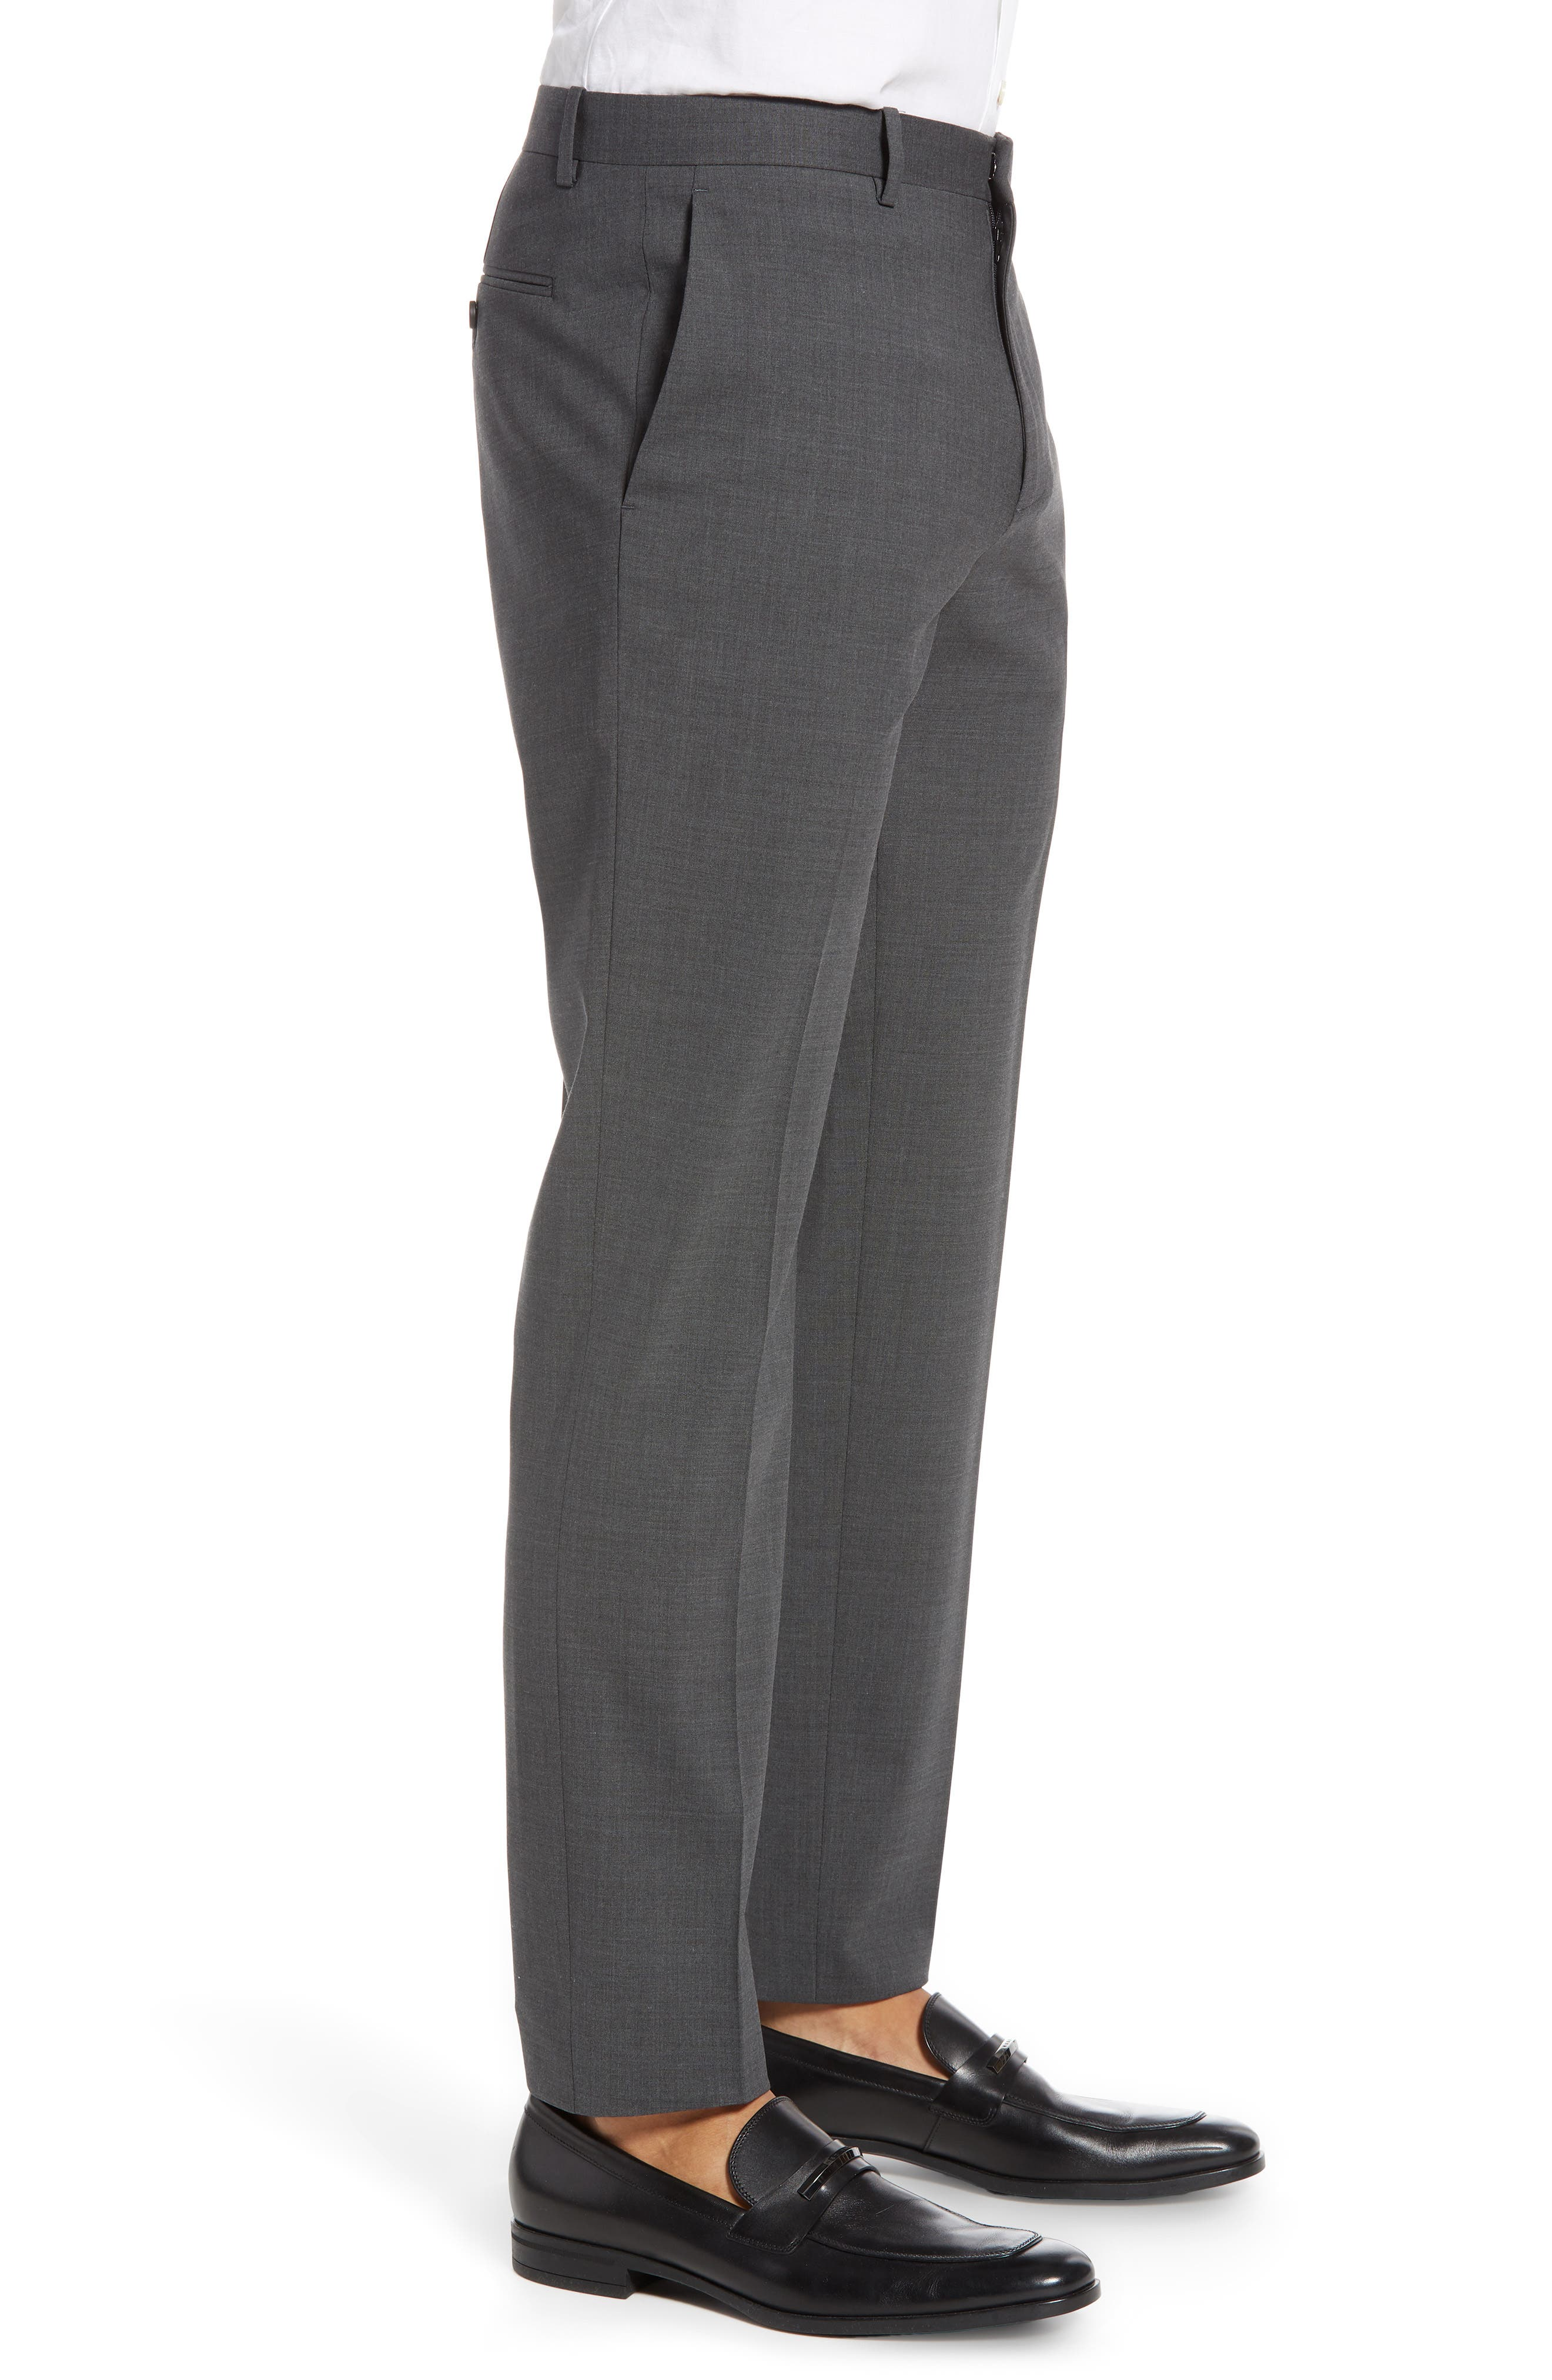 THEORY, Mayer New Tailor 2 Wool Trousers, Alternate thumbnail 3, color, CHARCOAL